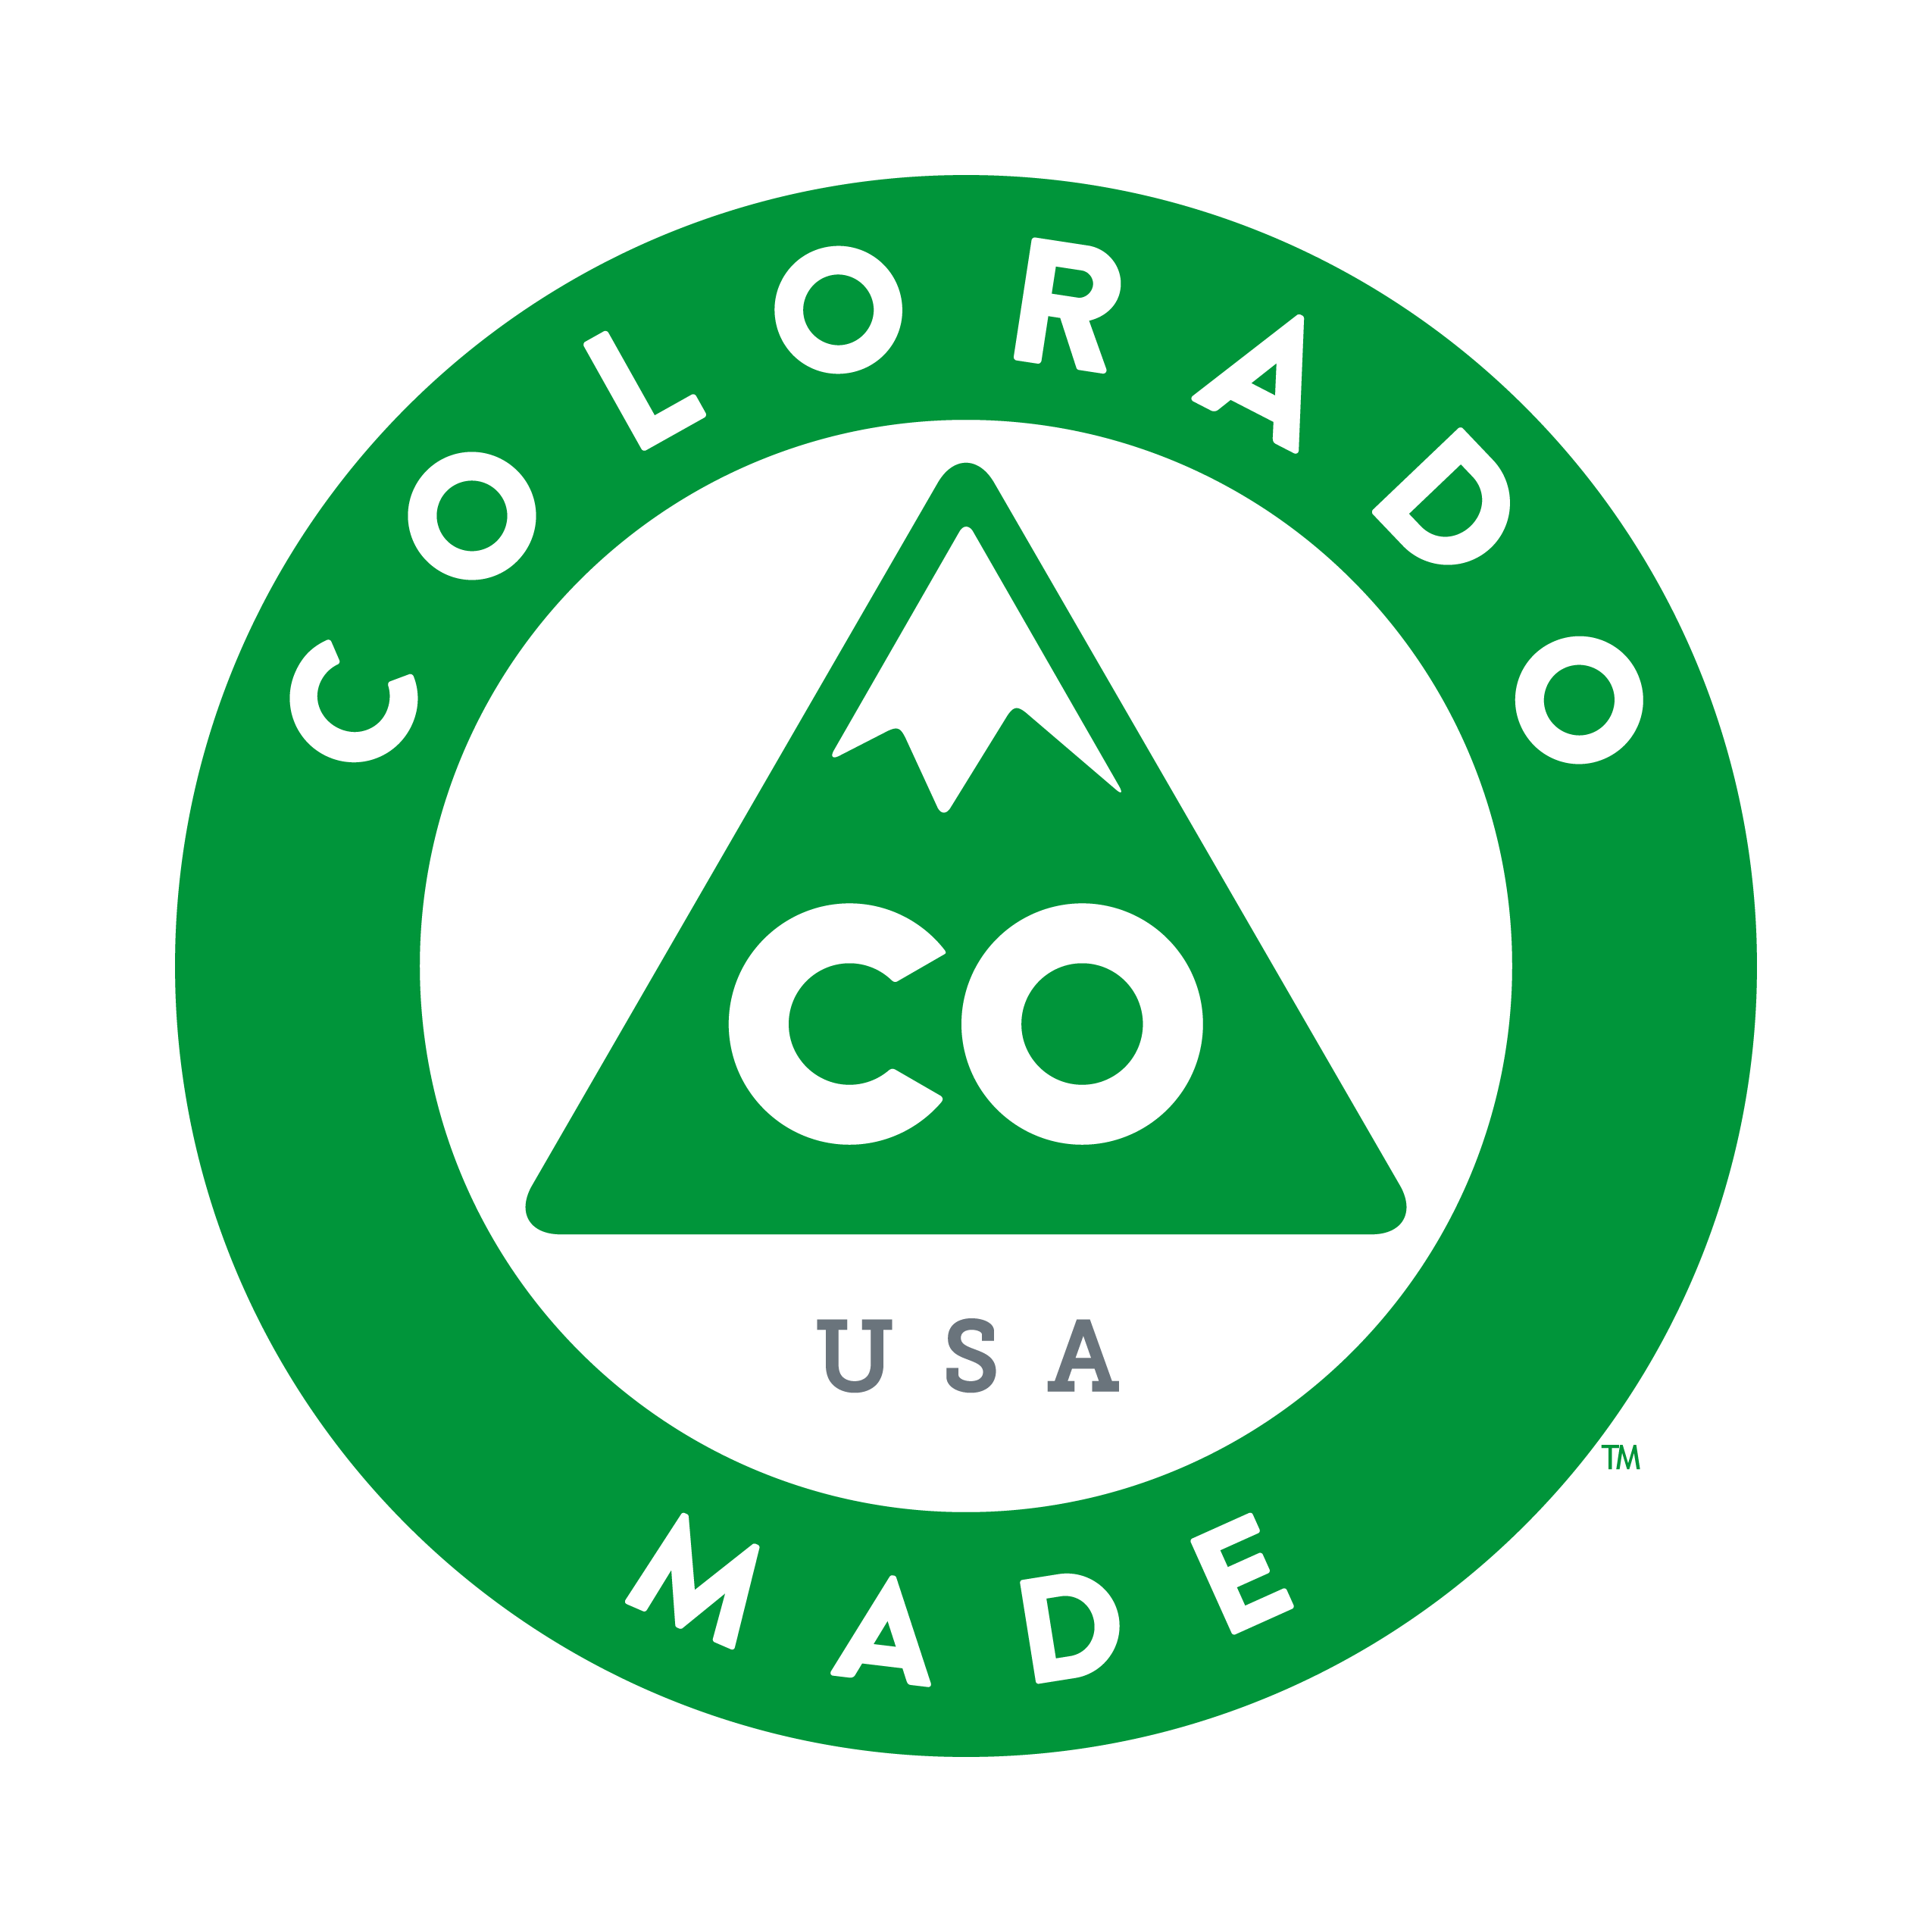 Tall Guns non-NRA programs are all made in Colorado by a Colorado company